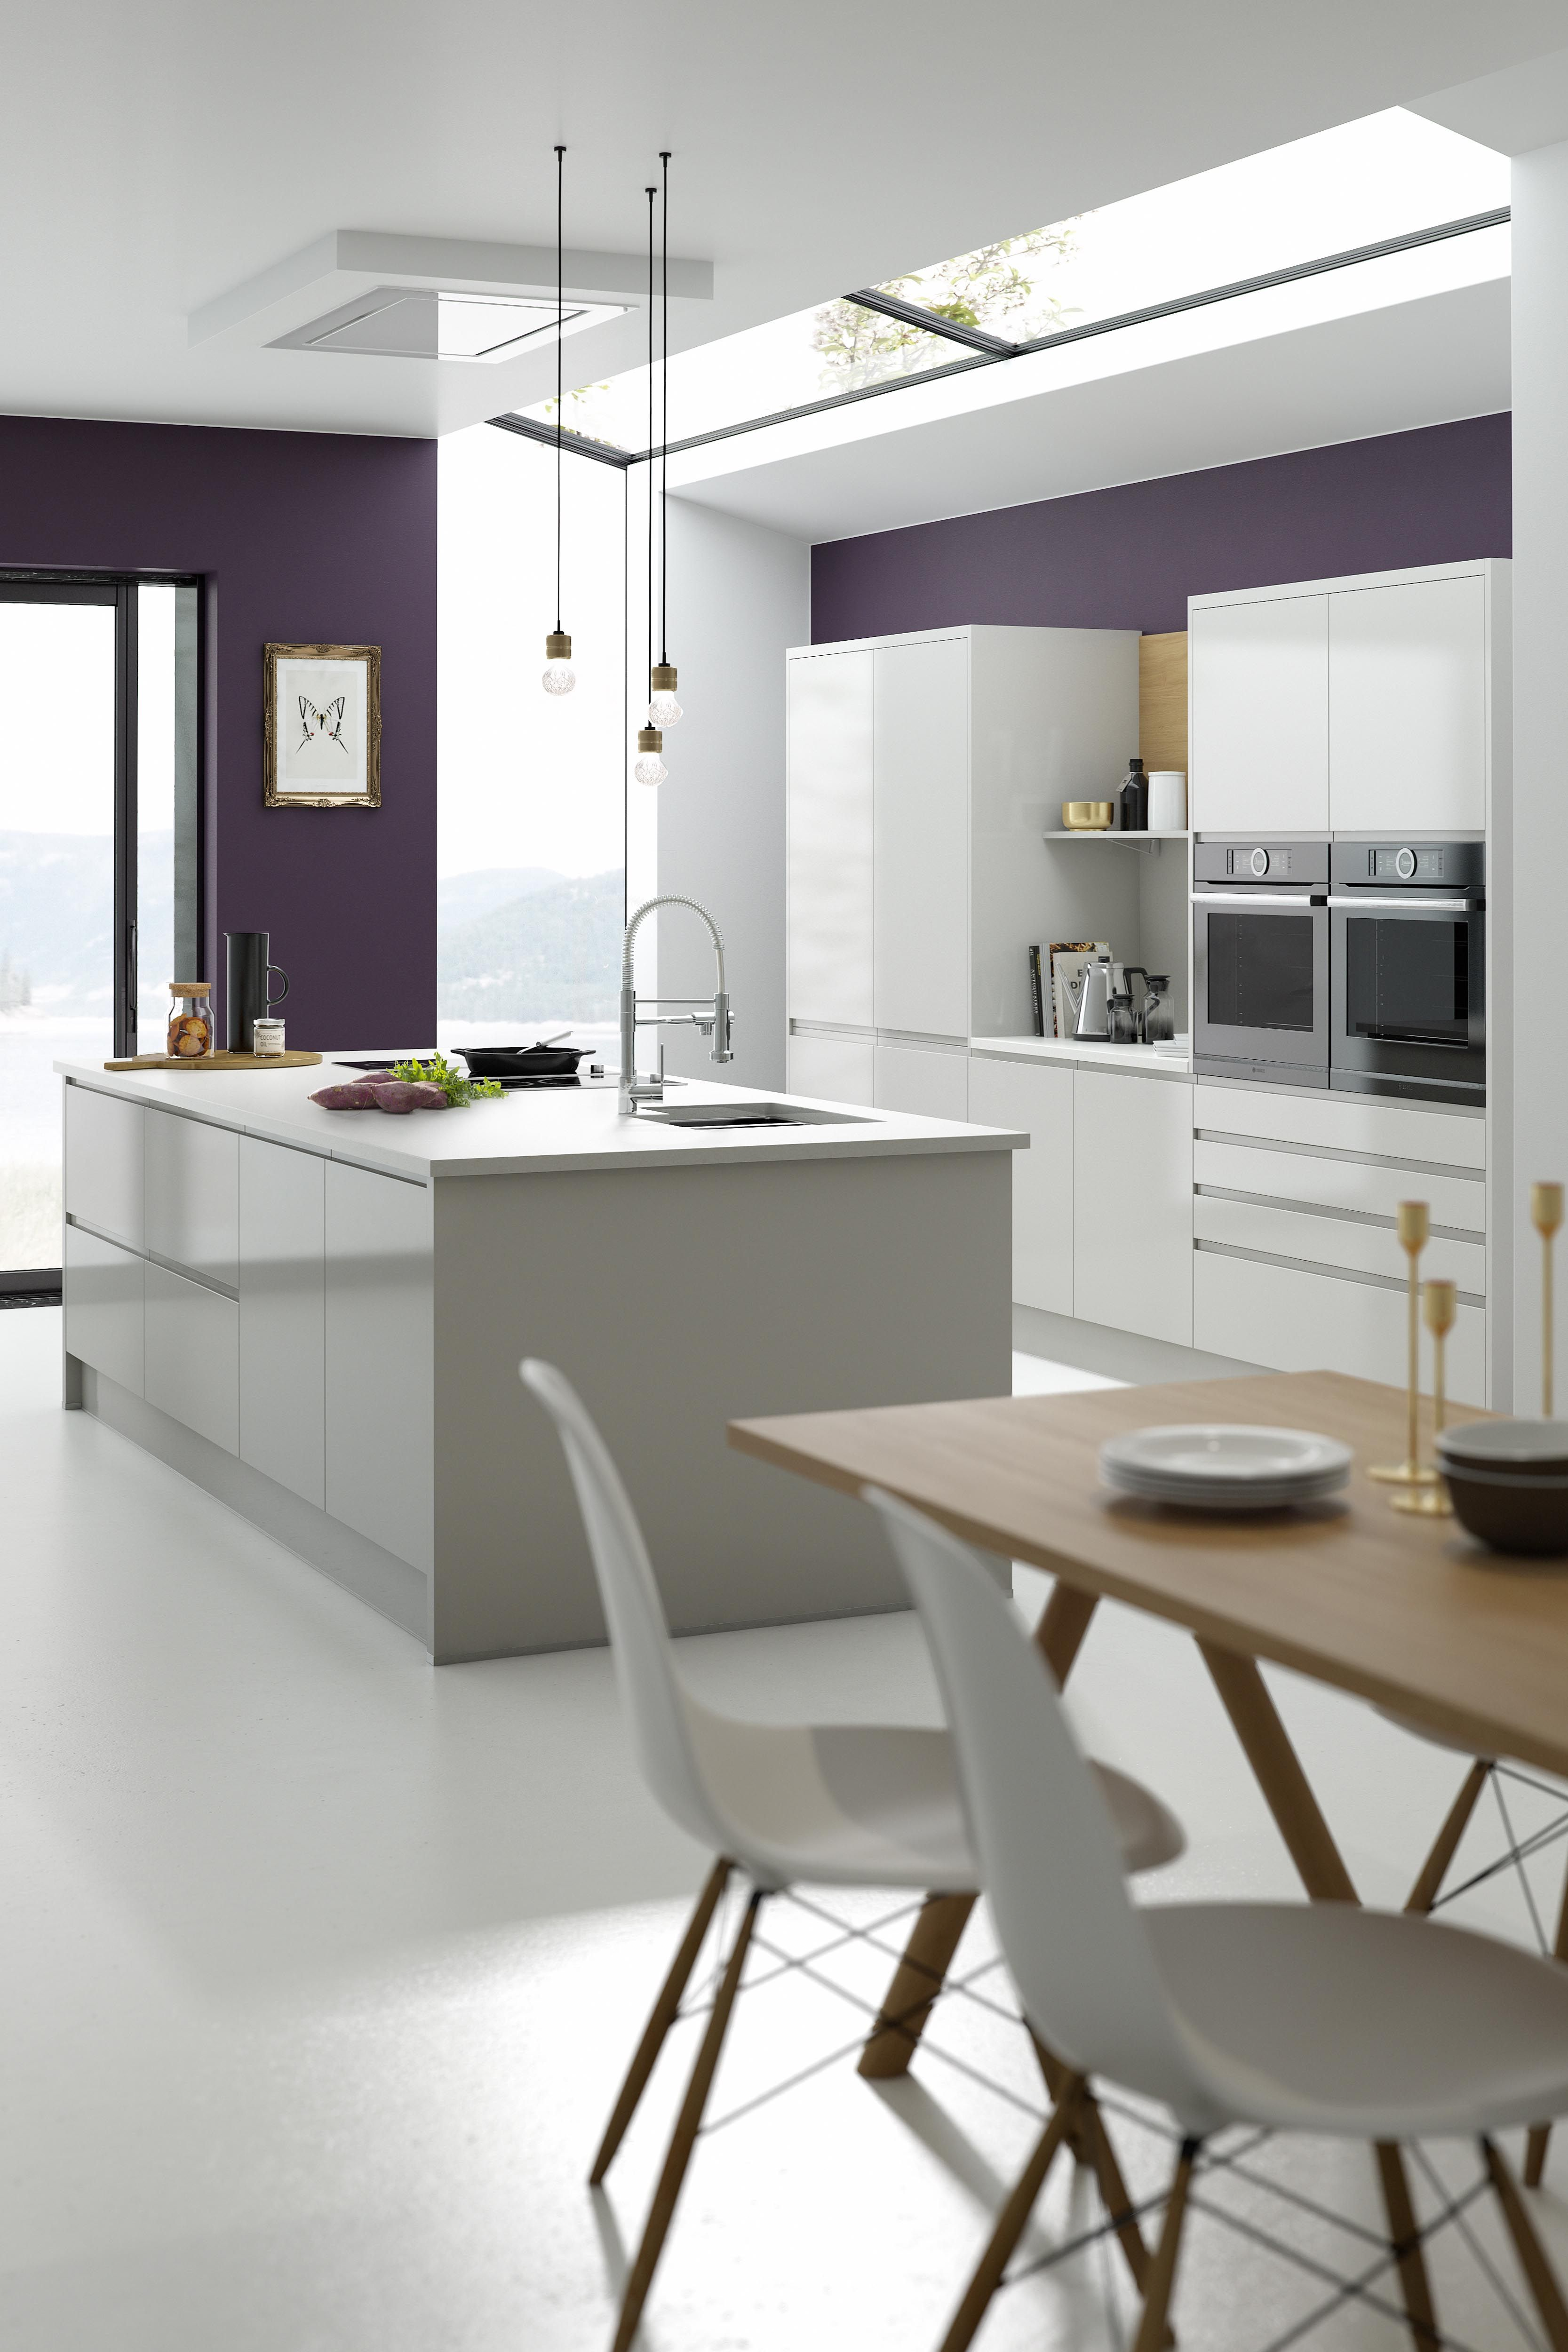 10 ultra modern kitchen design ideas Modern kitchen